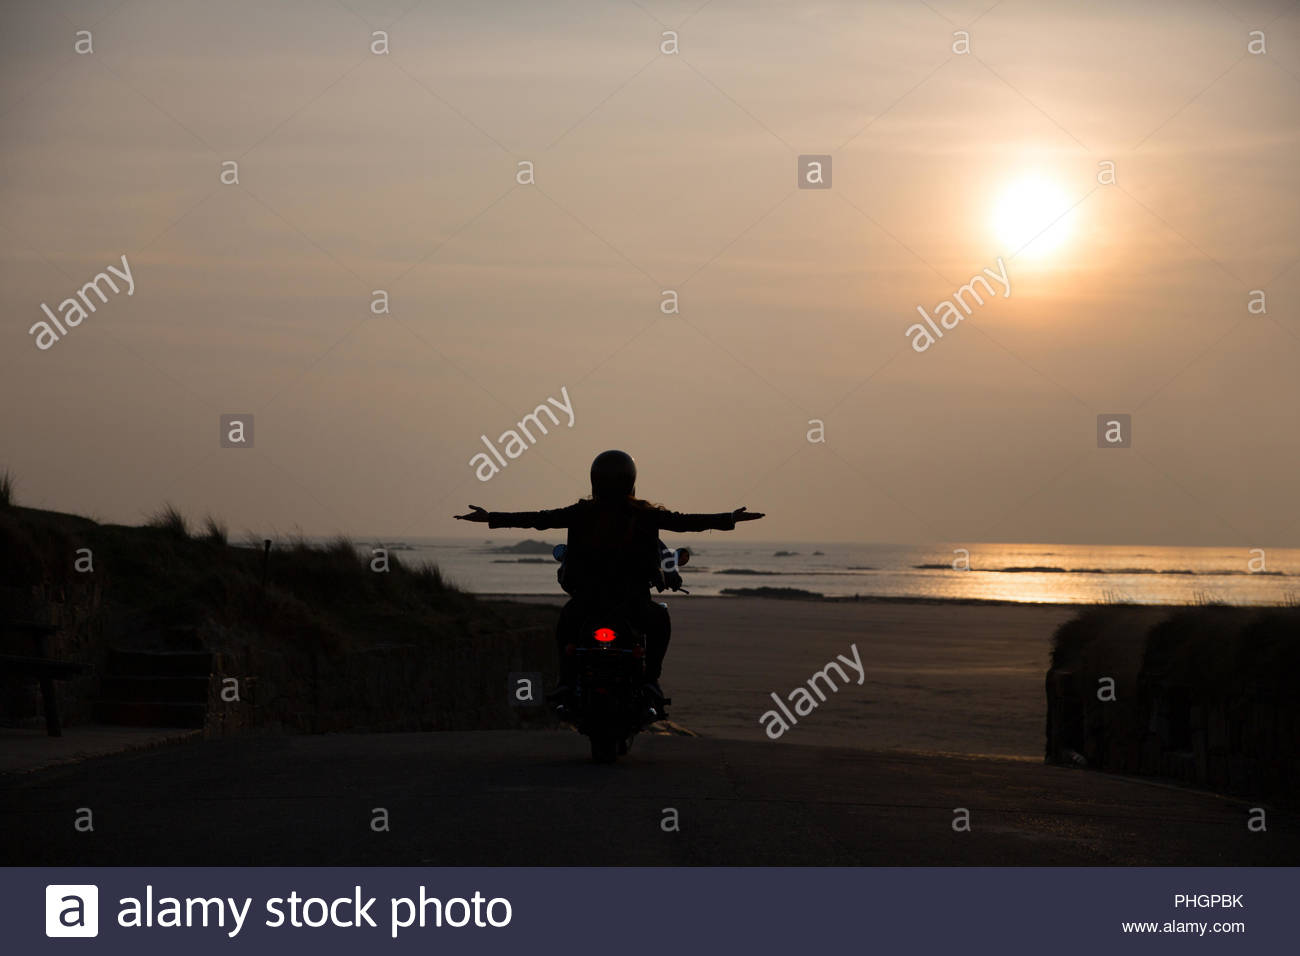 Silhouette of young couple on motorcycle at sunset - Stock Image